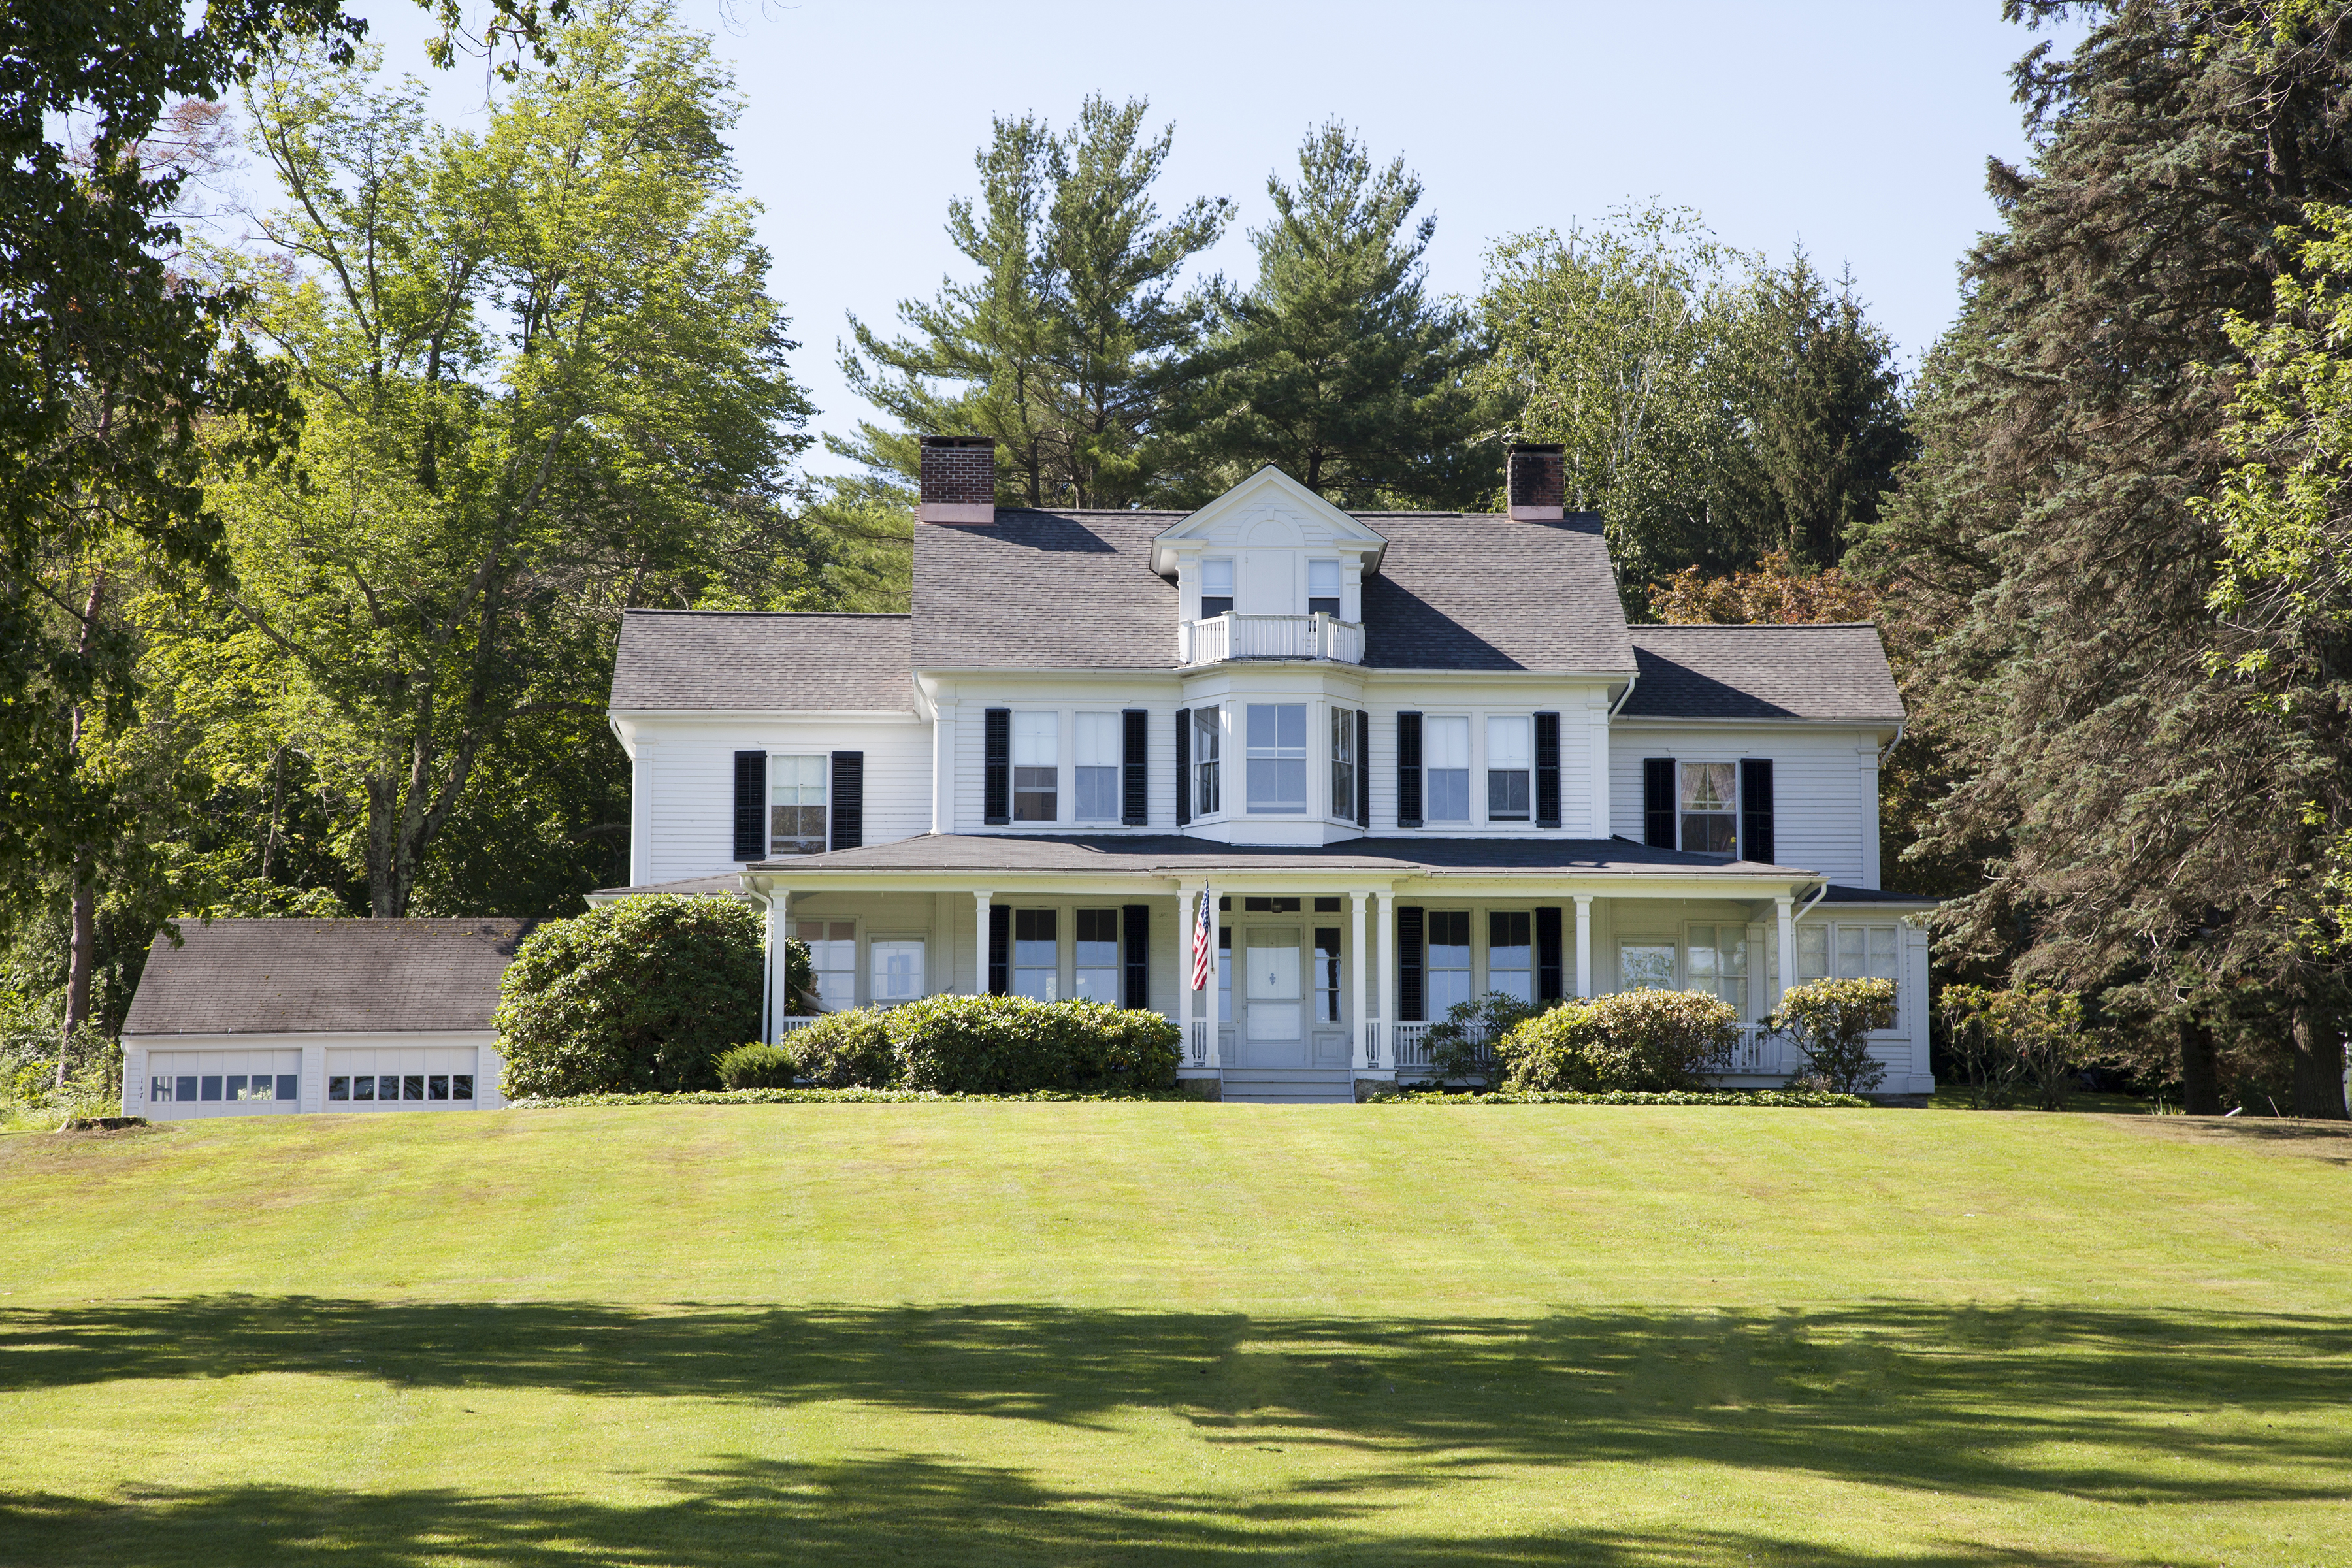 Property For Sale at Spectacular Lake Waramaug Victorian